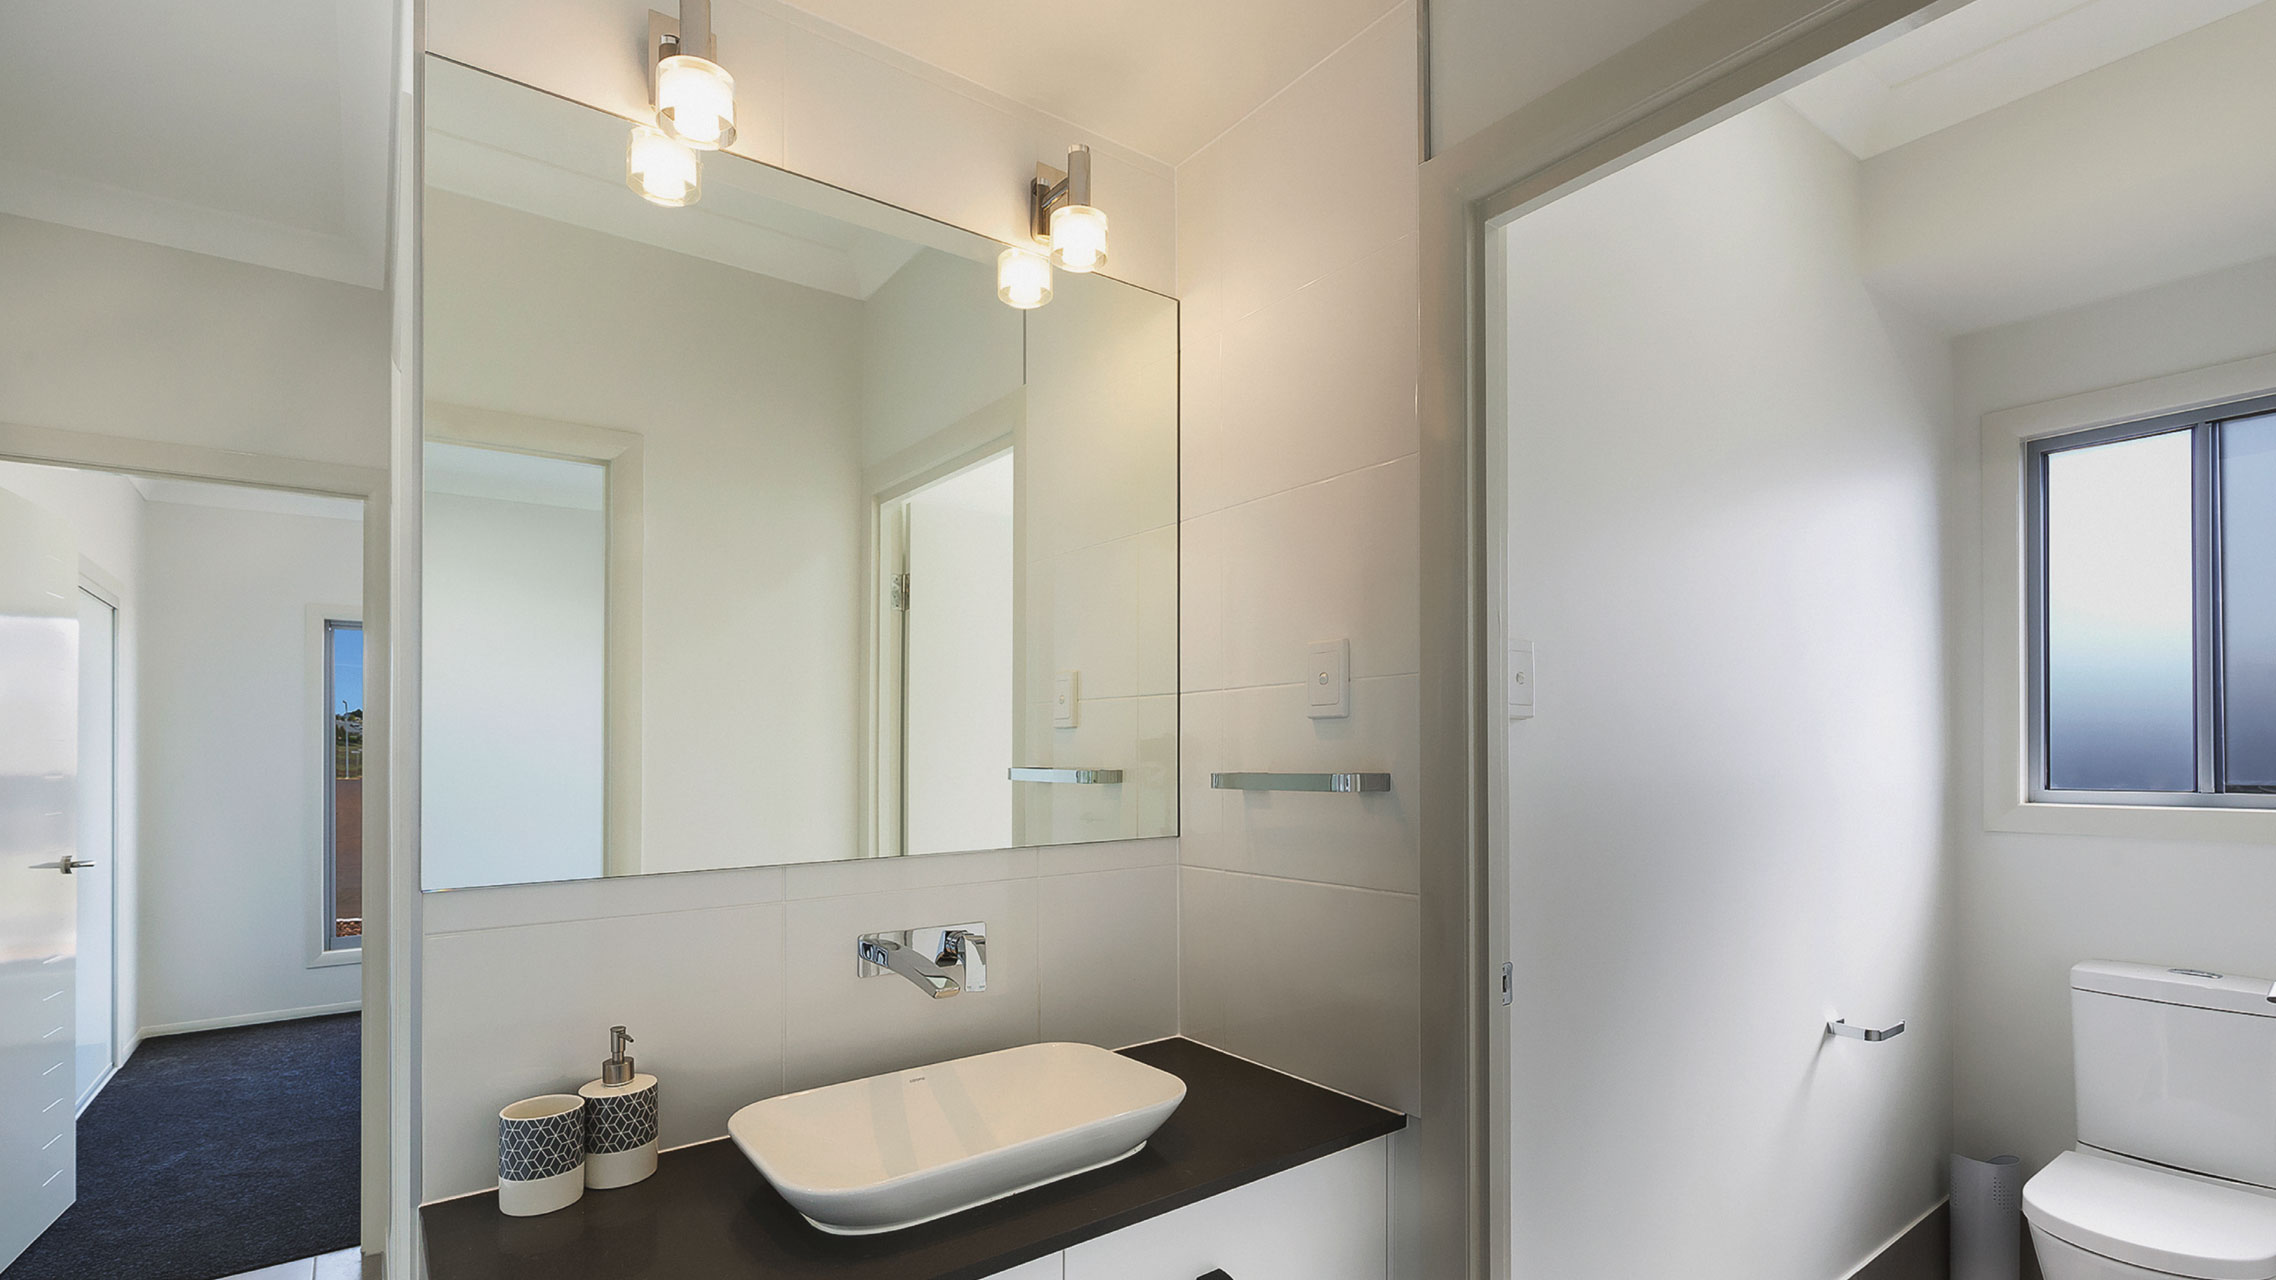 Frameless Bathroom Mirror with two light fittings above it